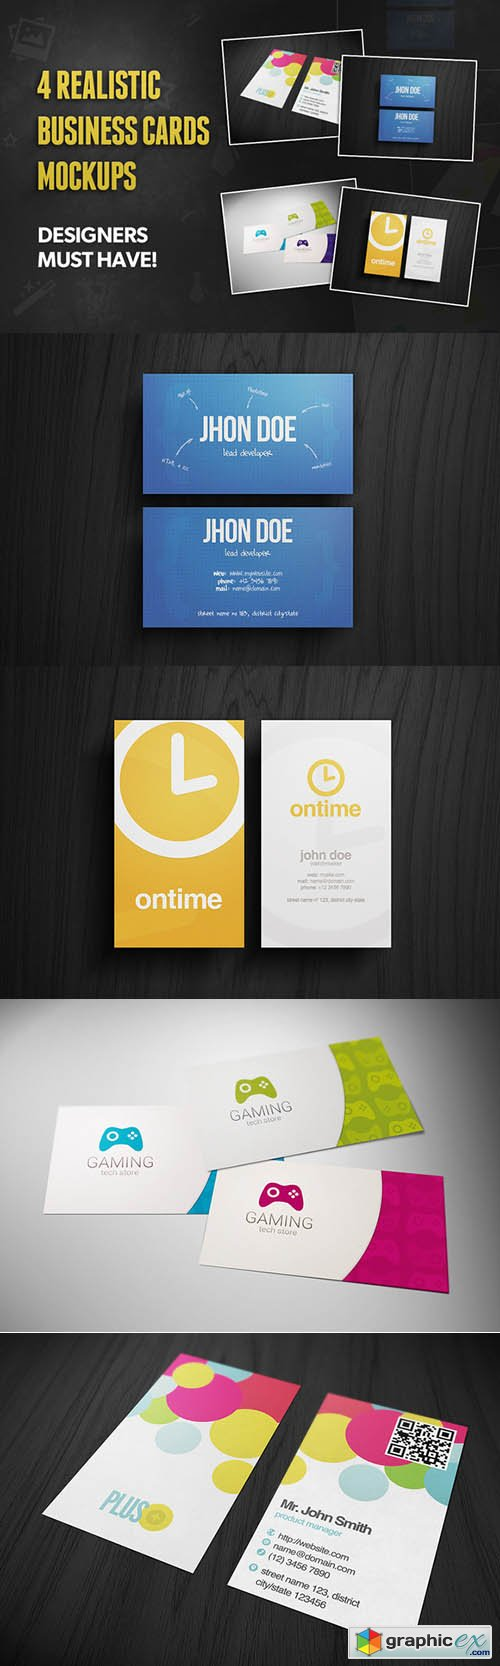 4 Realistic Business Card Mockups